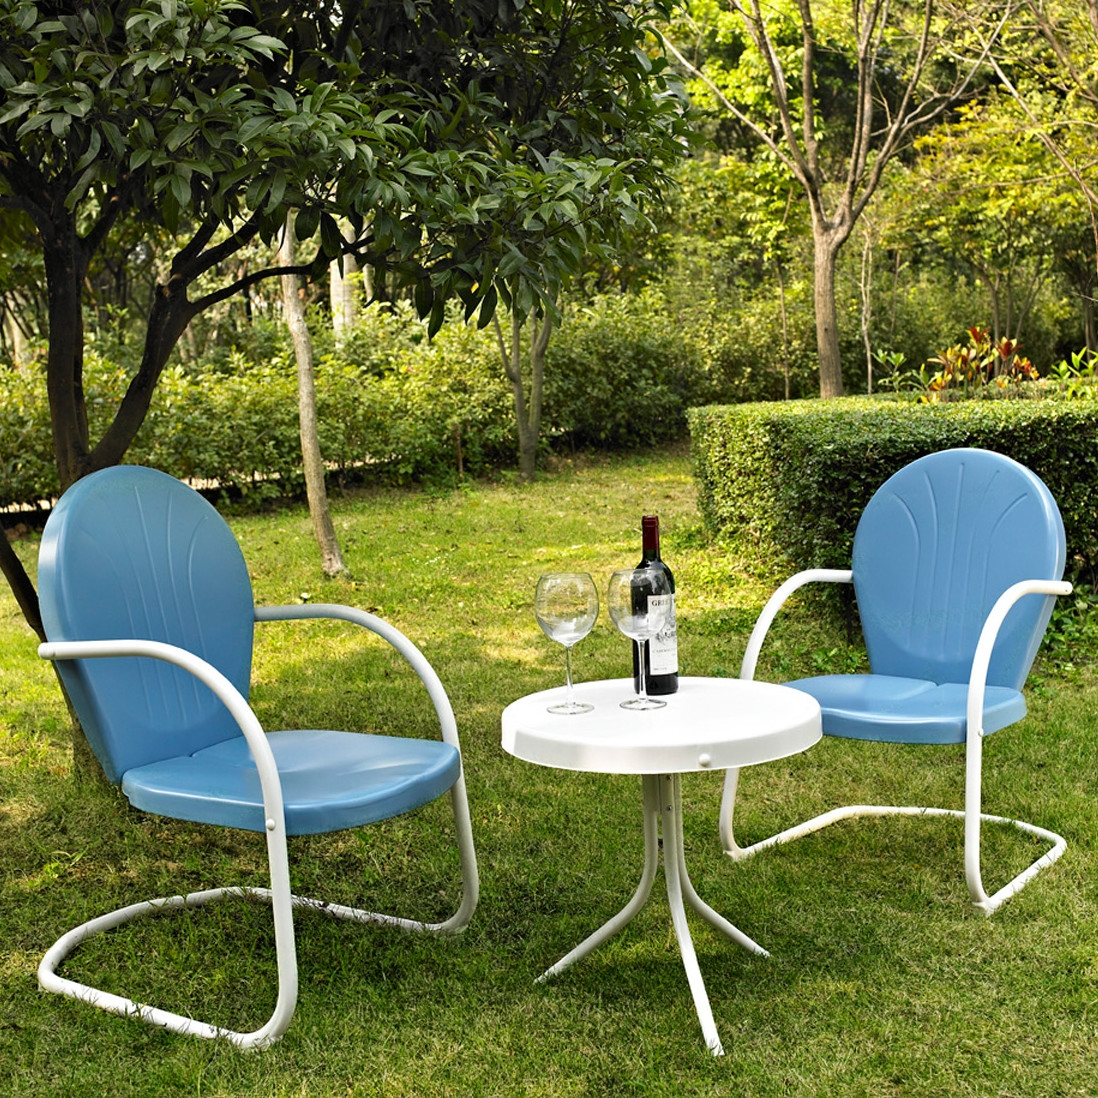 3-Piece Patio Furniture Set w/ Table & 2 Chairs in Sky Blue, SB3S138991 :  Relax outside for hours on our nostalgically inspired 3-Piece Patio Furniture Set w/ Table & 2 Chairs in Sky Blue. Kick back while you reminisce in this seating set, designed to withstand the hottest of summer days and other harsh conditions. Use a soft clean cloth that will not scratch the surface when dusting. Use of furniture polish is not necessary. Should you choose to use a furniture polish, test in an inconspicuous area first. Use of solvents of any kind could damage your furniture's finish. To clean, simply use a soft cloth moistened with lukewarm water, then buff with a dry soft clean cloth. UV resistant; Set includes 1 side table and 2 chairs; Sturdy steel construction; Non toxic powder coated finish; Weather Resistant Details: Weather resistant Water; Resistant Details: Water resistant and waterproof; Assembly Required: Yes; Product Warranty: 3 Month limited; Woven: Yes; Sling Included: No; Weight Capacity: 250lbs. Style: Contemporary; Pieces Included: 1 Side table, 2 Chairs; Country of Manufacture: China.